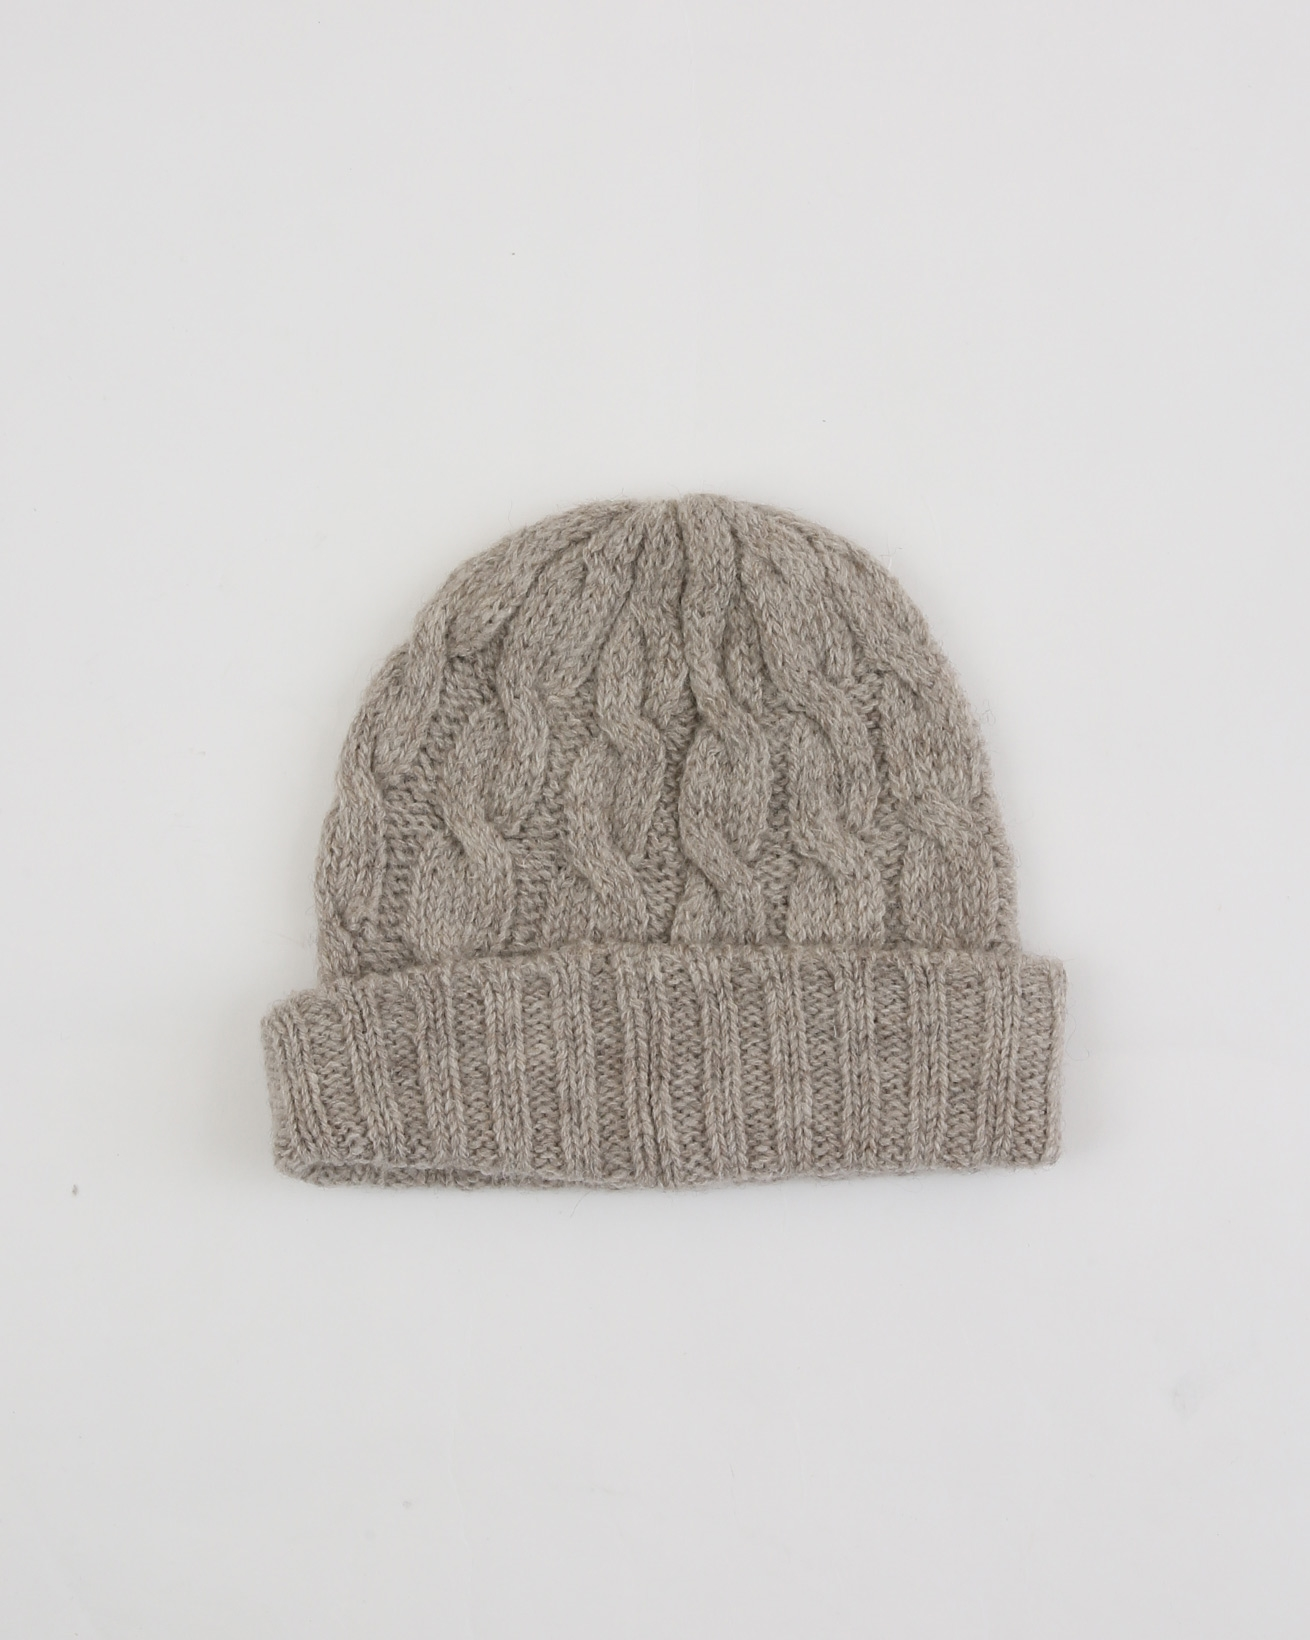 Cable Knit Beanie - One Size - Mushroom Cable - 1932